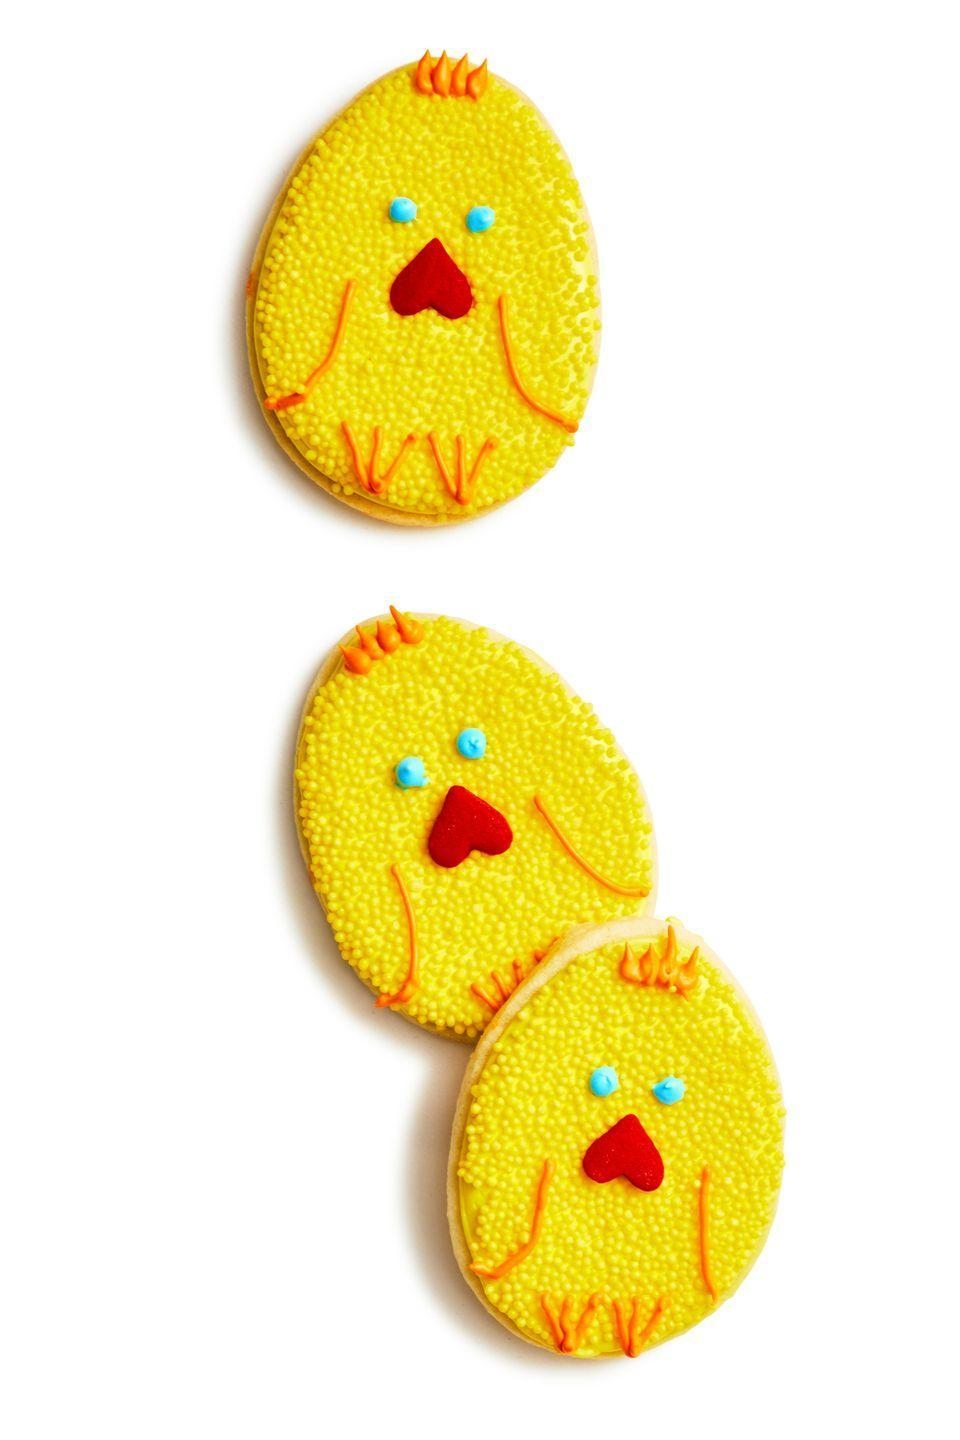 "<p>Yellow sprinkles and homemade icing turn your favorite sugar cookie recipe into a kid-friendly Easter treat.</p><p><strong><a href=""https://www.womansday.com/food-recipes/food-drinks/a19156849/cookie-chicks-recipe/"" rel=""nofollow noopener"" target=""_blank"" data-ylk=""slk:Get the Chick Cookies recipe."" class=""link rapid-noclick-resp""><em>Get the Chick Cookies recipe.</em></a></strong></p>"